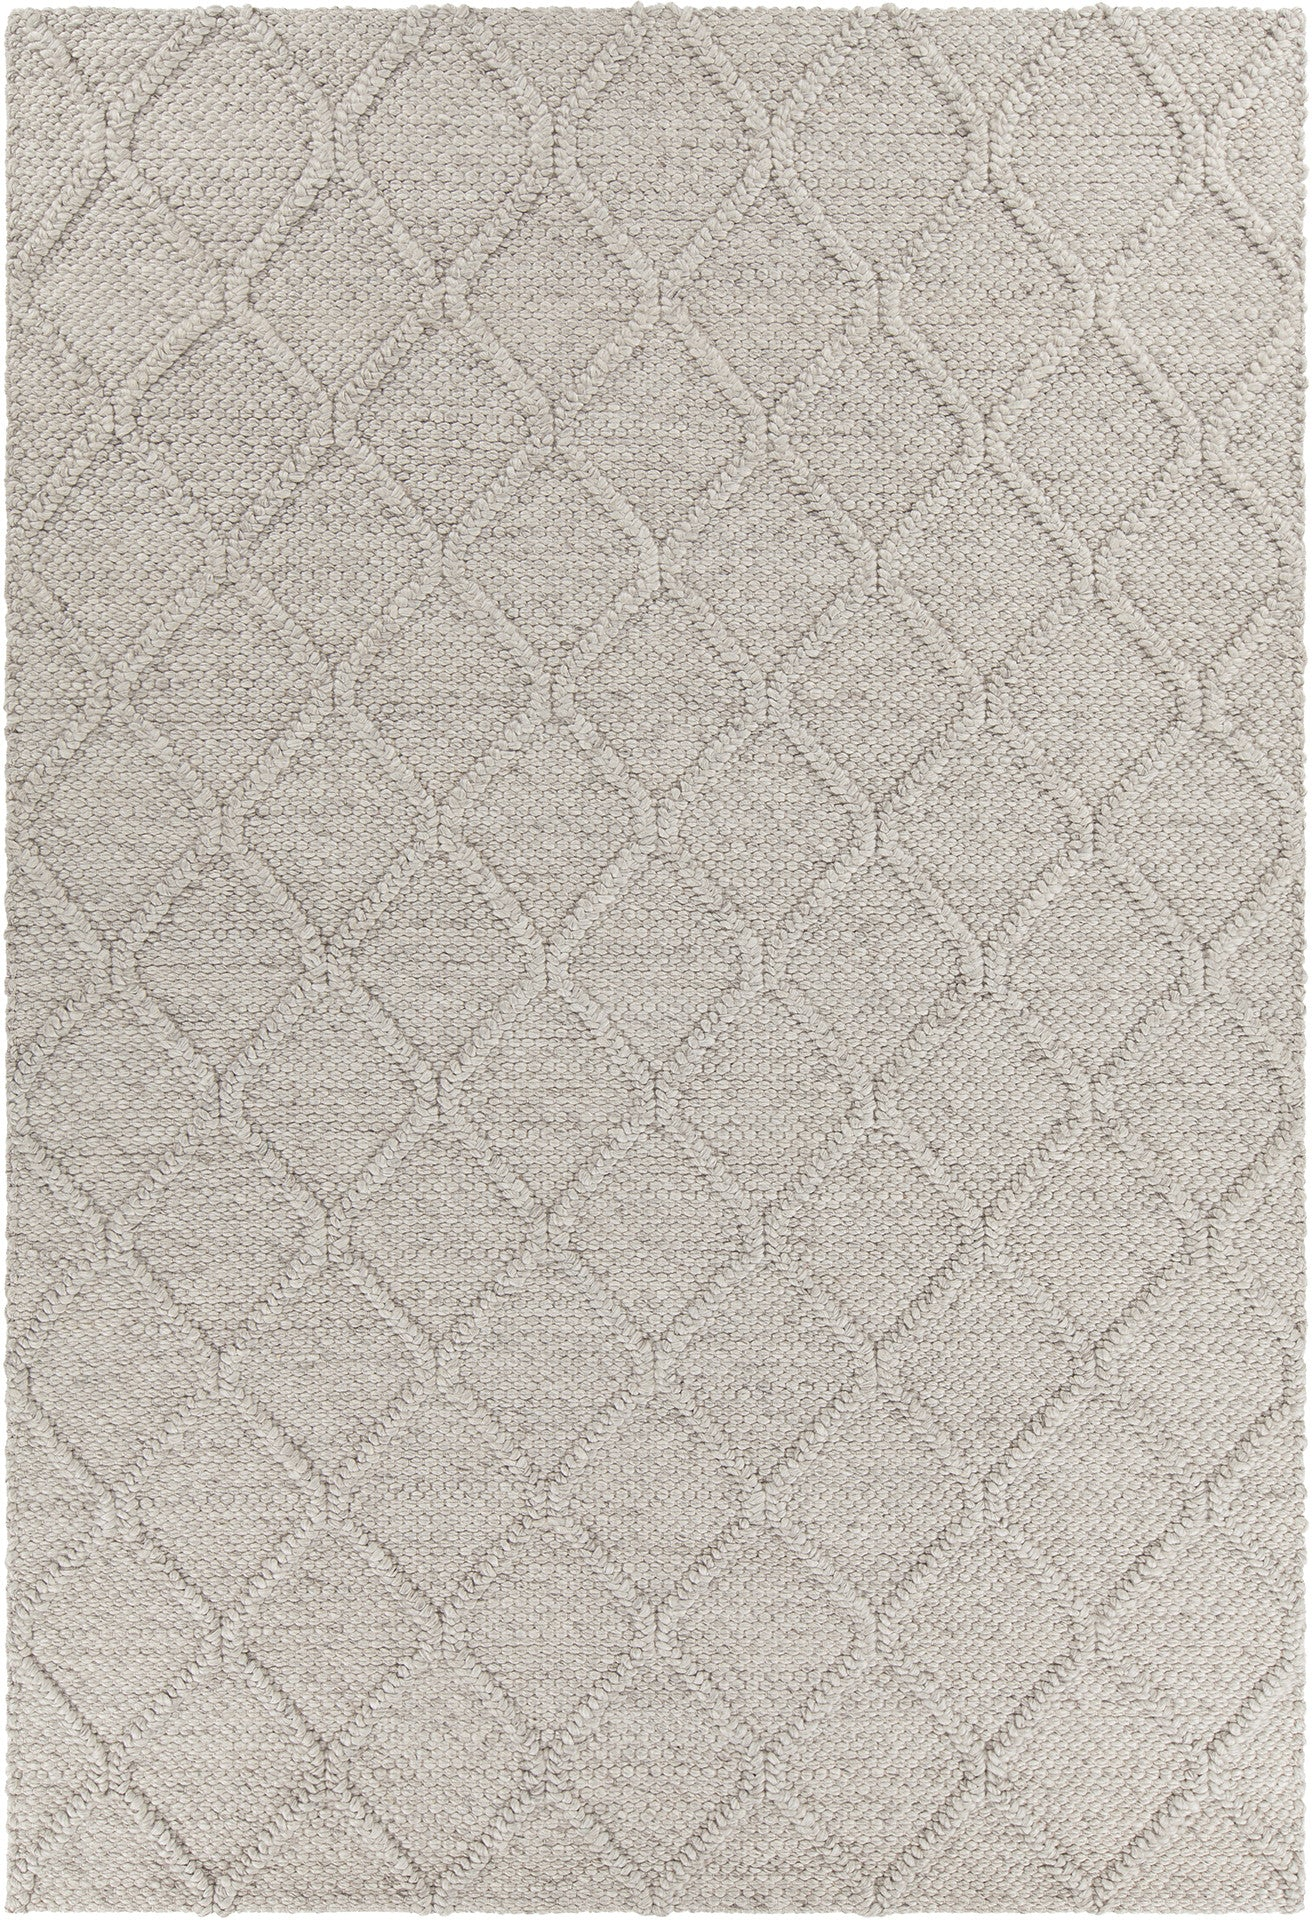 Sujan Collection Hand-Woven Area Rug in Grey design by Chandra rugs - Sujan Collection Hand-Woven Area Rug In Grey Design By Chandra